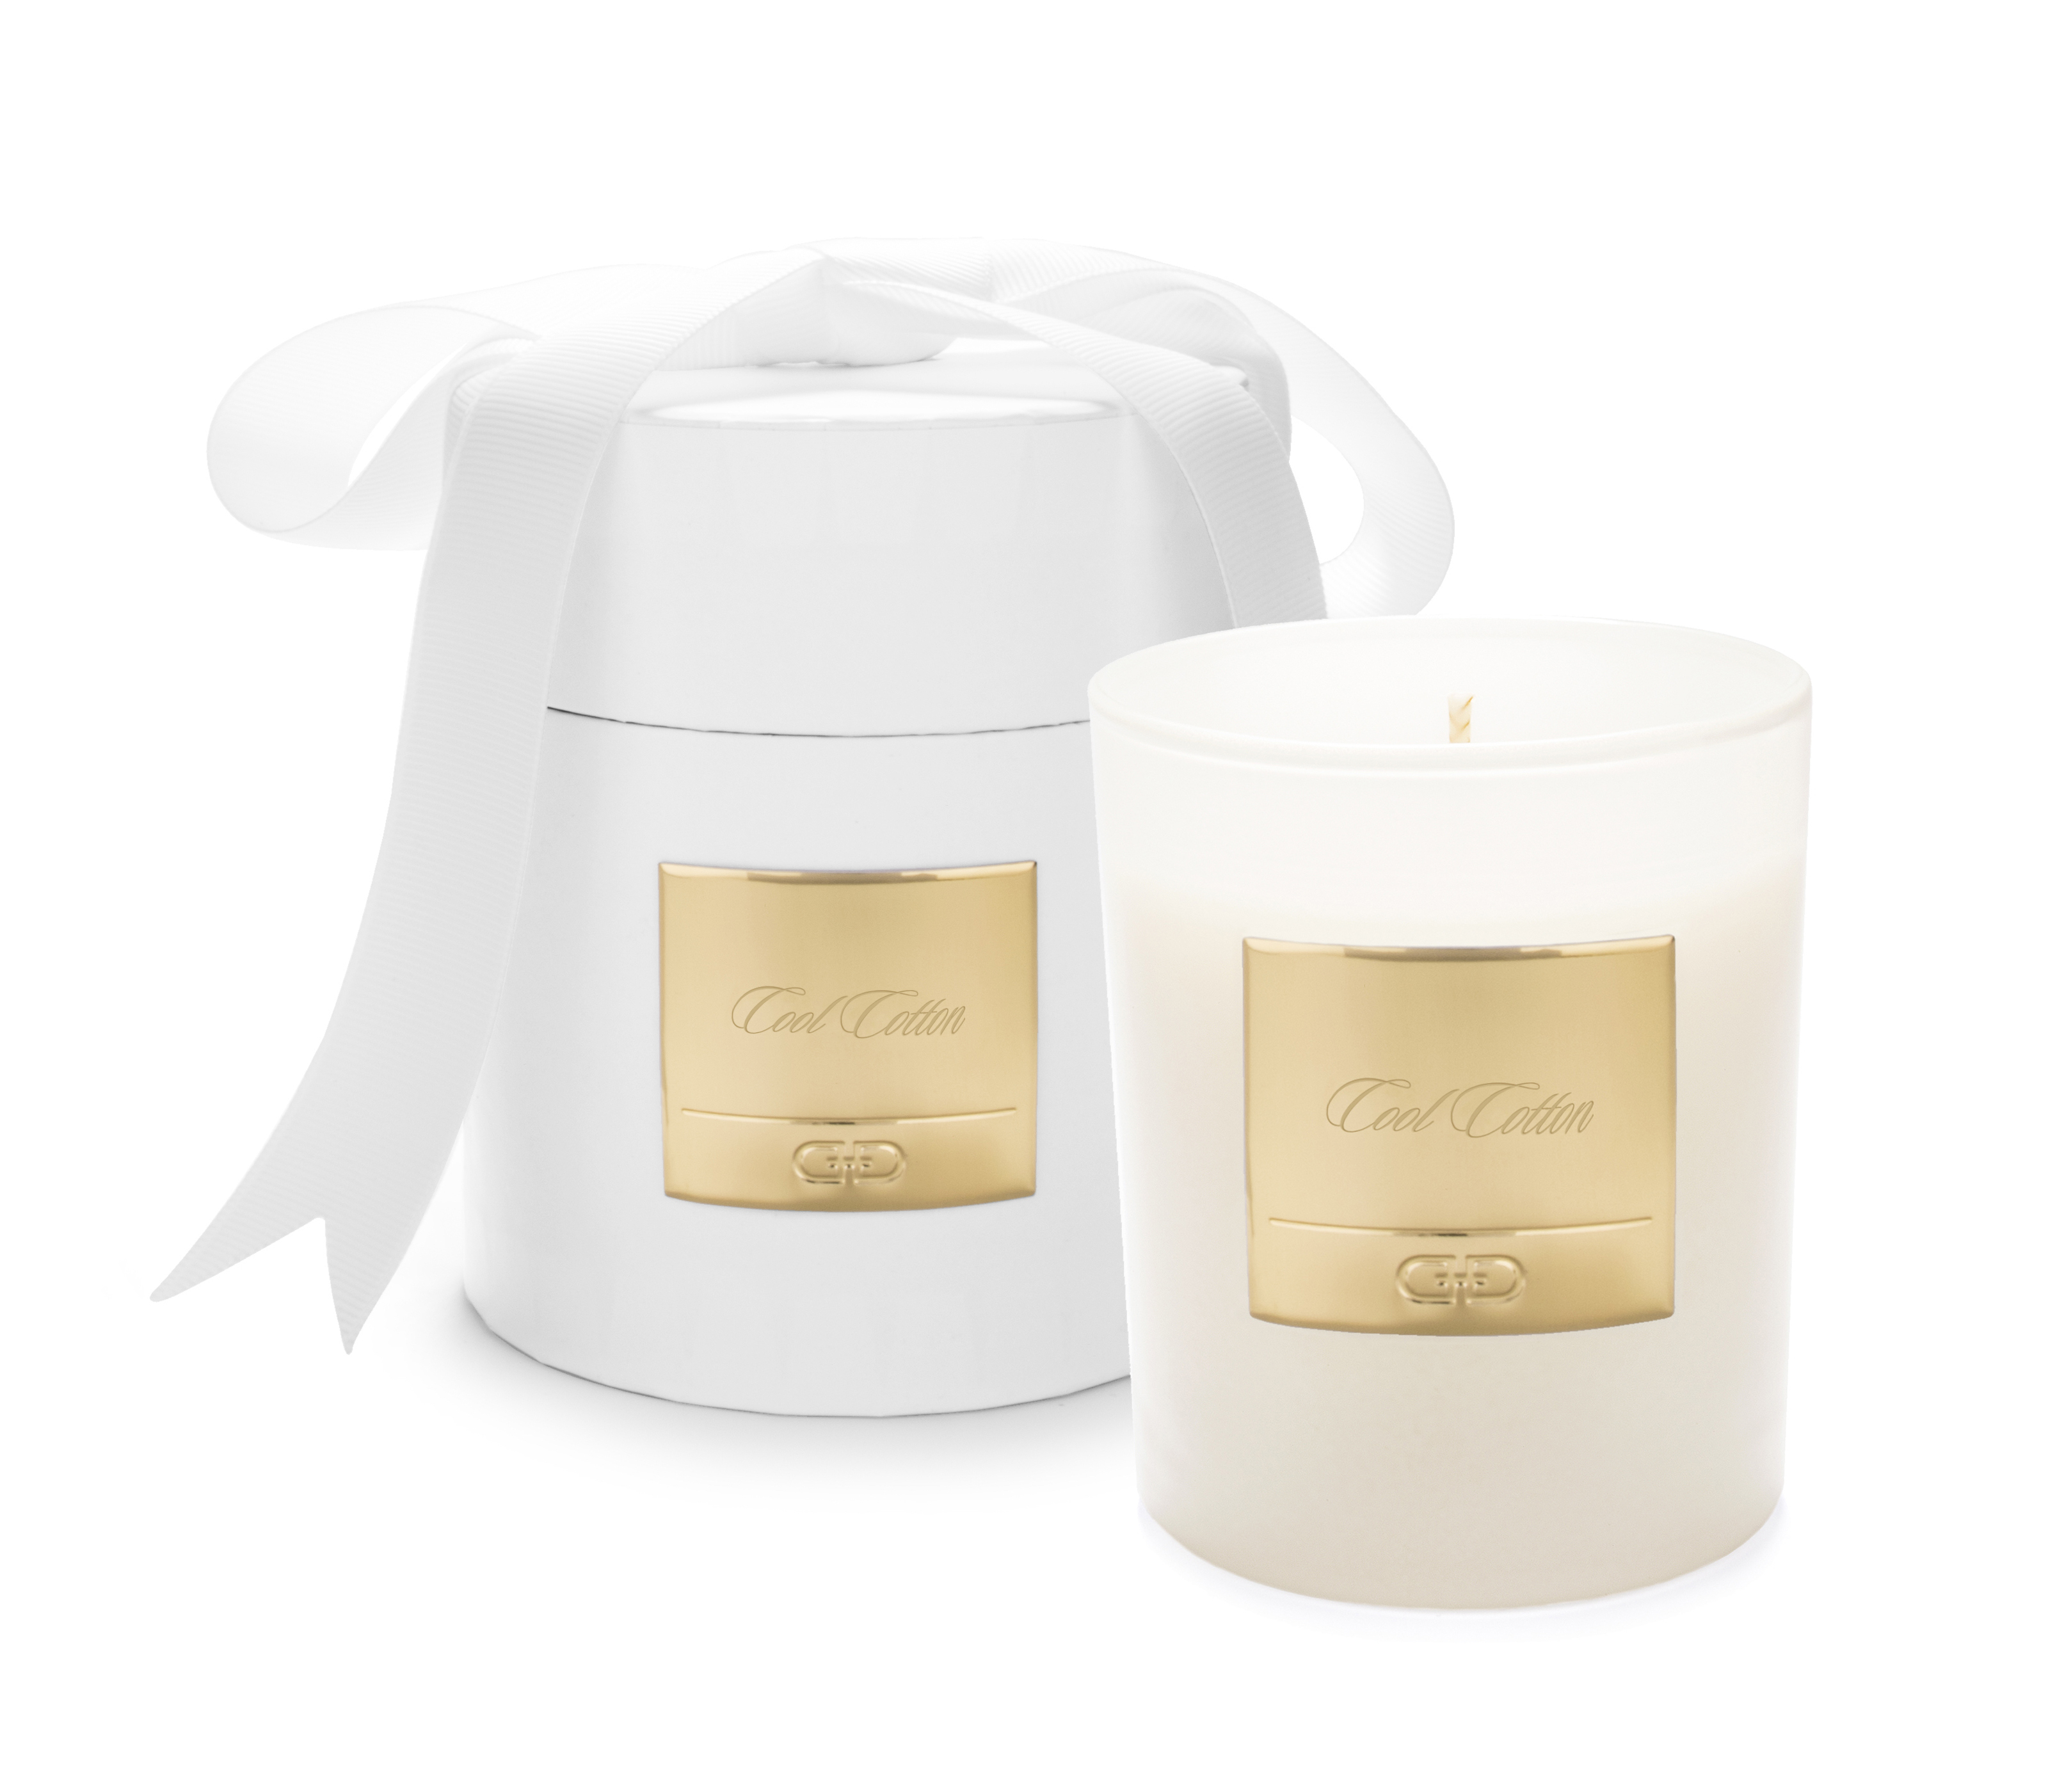 Cool Cotton - White & Gold luxury candle